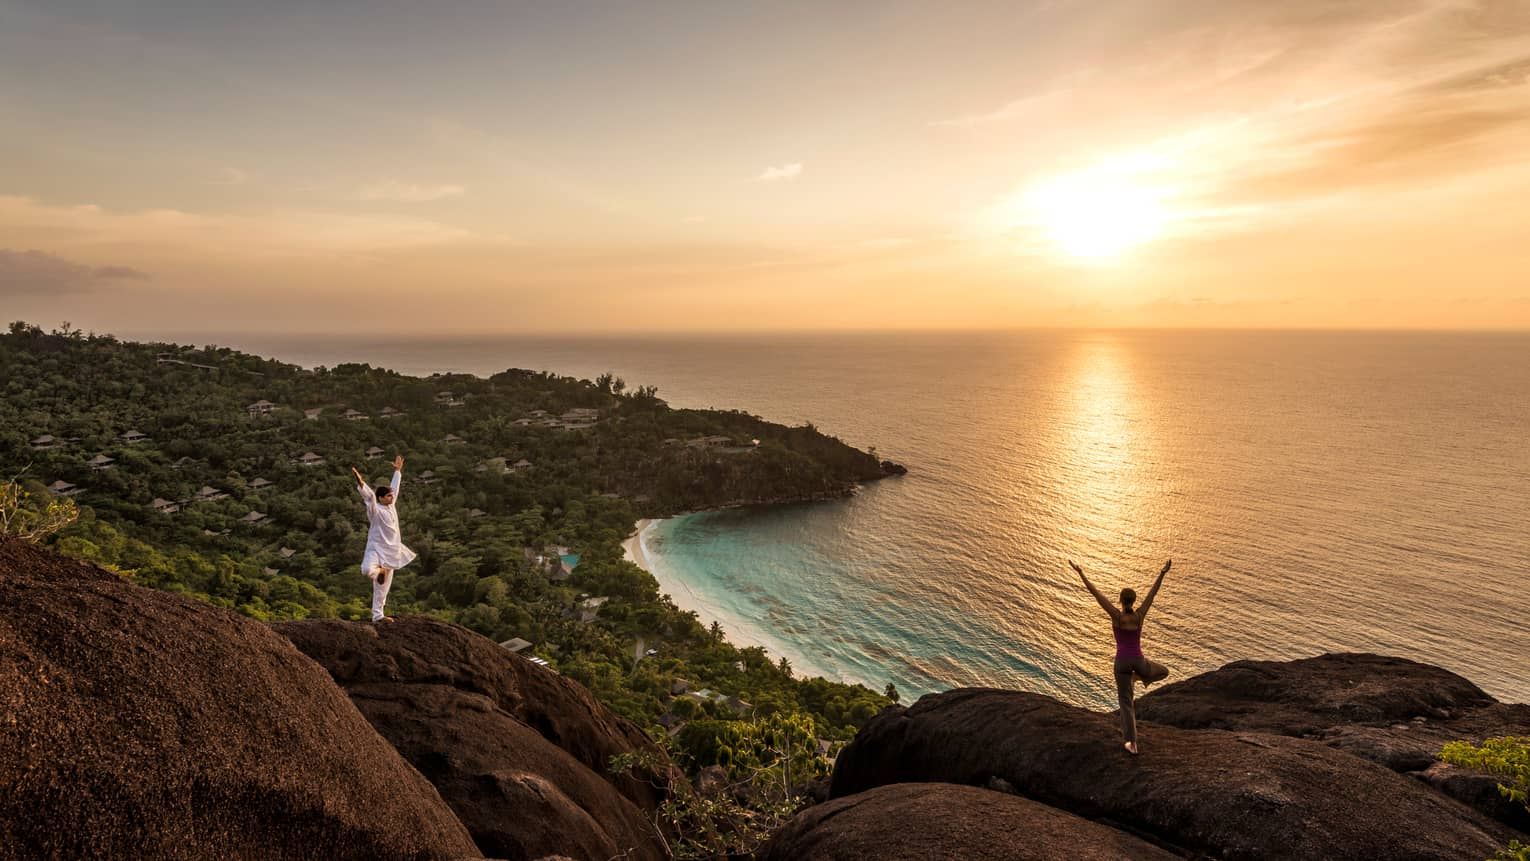 Woman and man stand apart on large boulders overlooking canopy of trees, ocean at sunrise